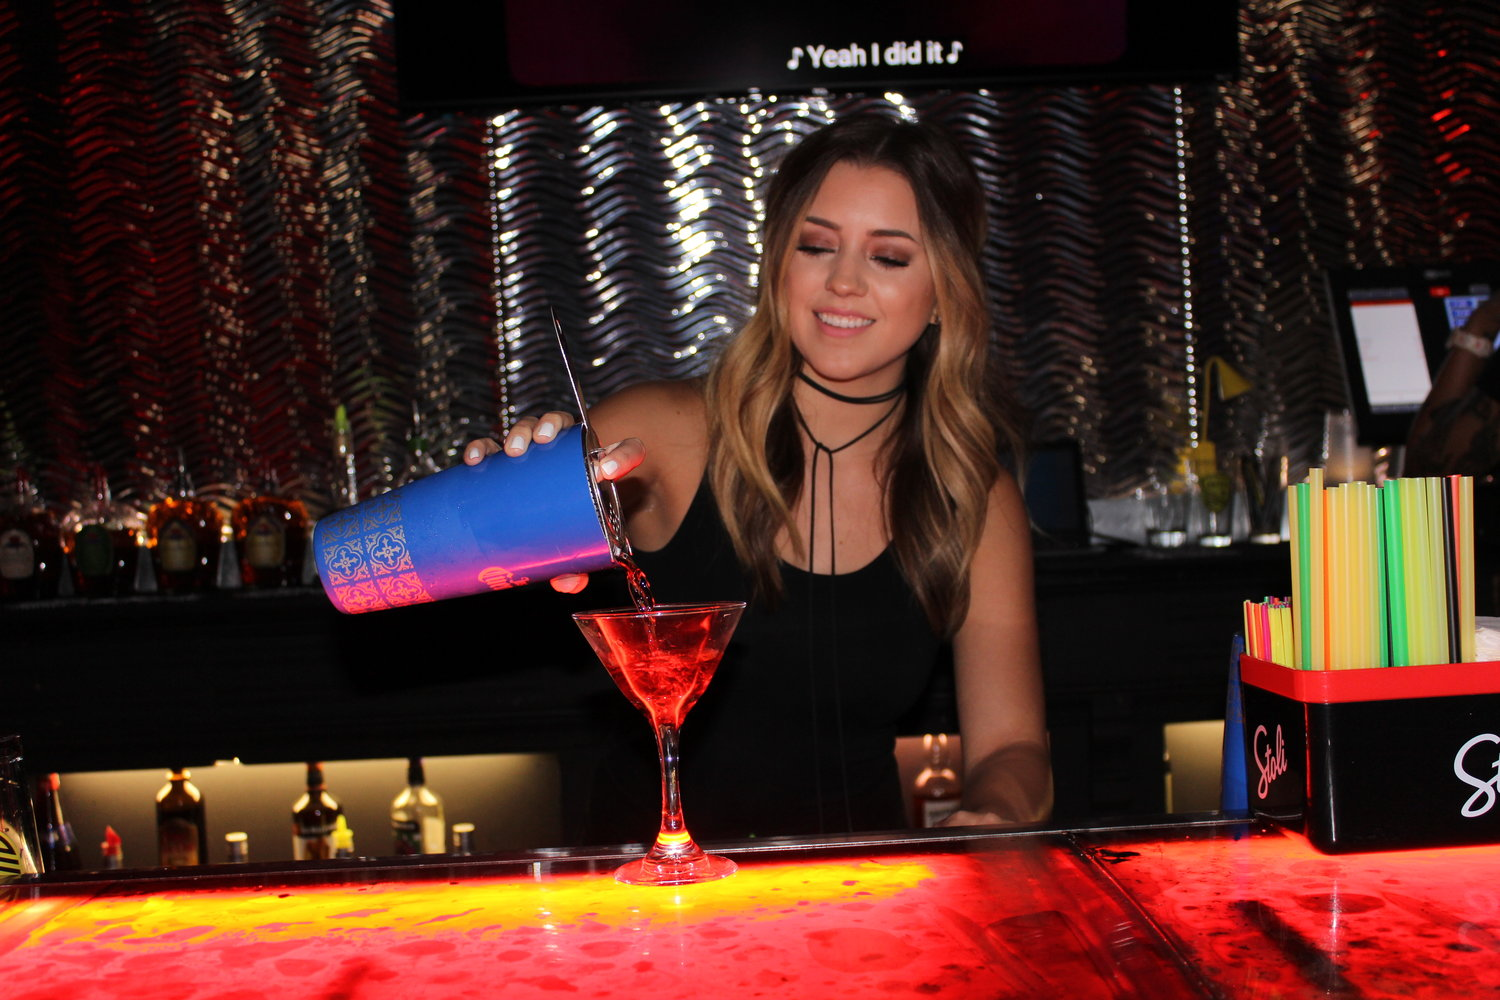 Club 30 bartender Chandler Benda pours a drink on Thursday, Aug. 8, during the club's Happy Hour, which runs from 4 to 8 p.m. every day.